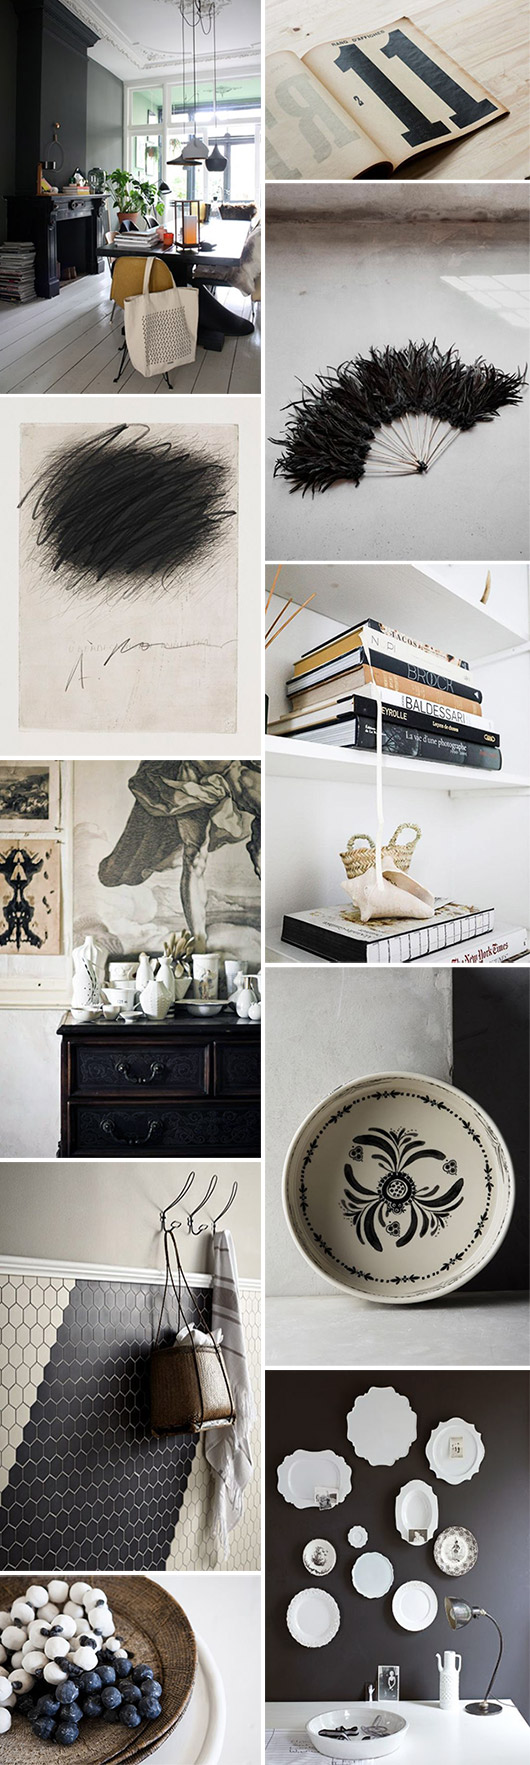 black and white decor inspiration. / sfgirlbybay